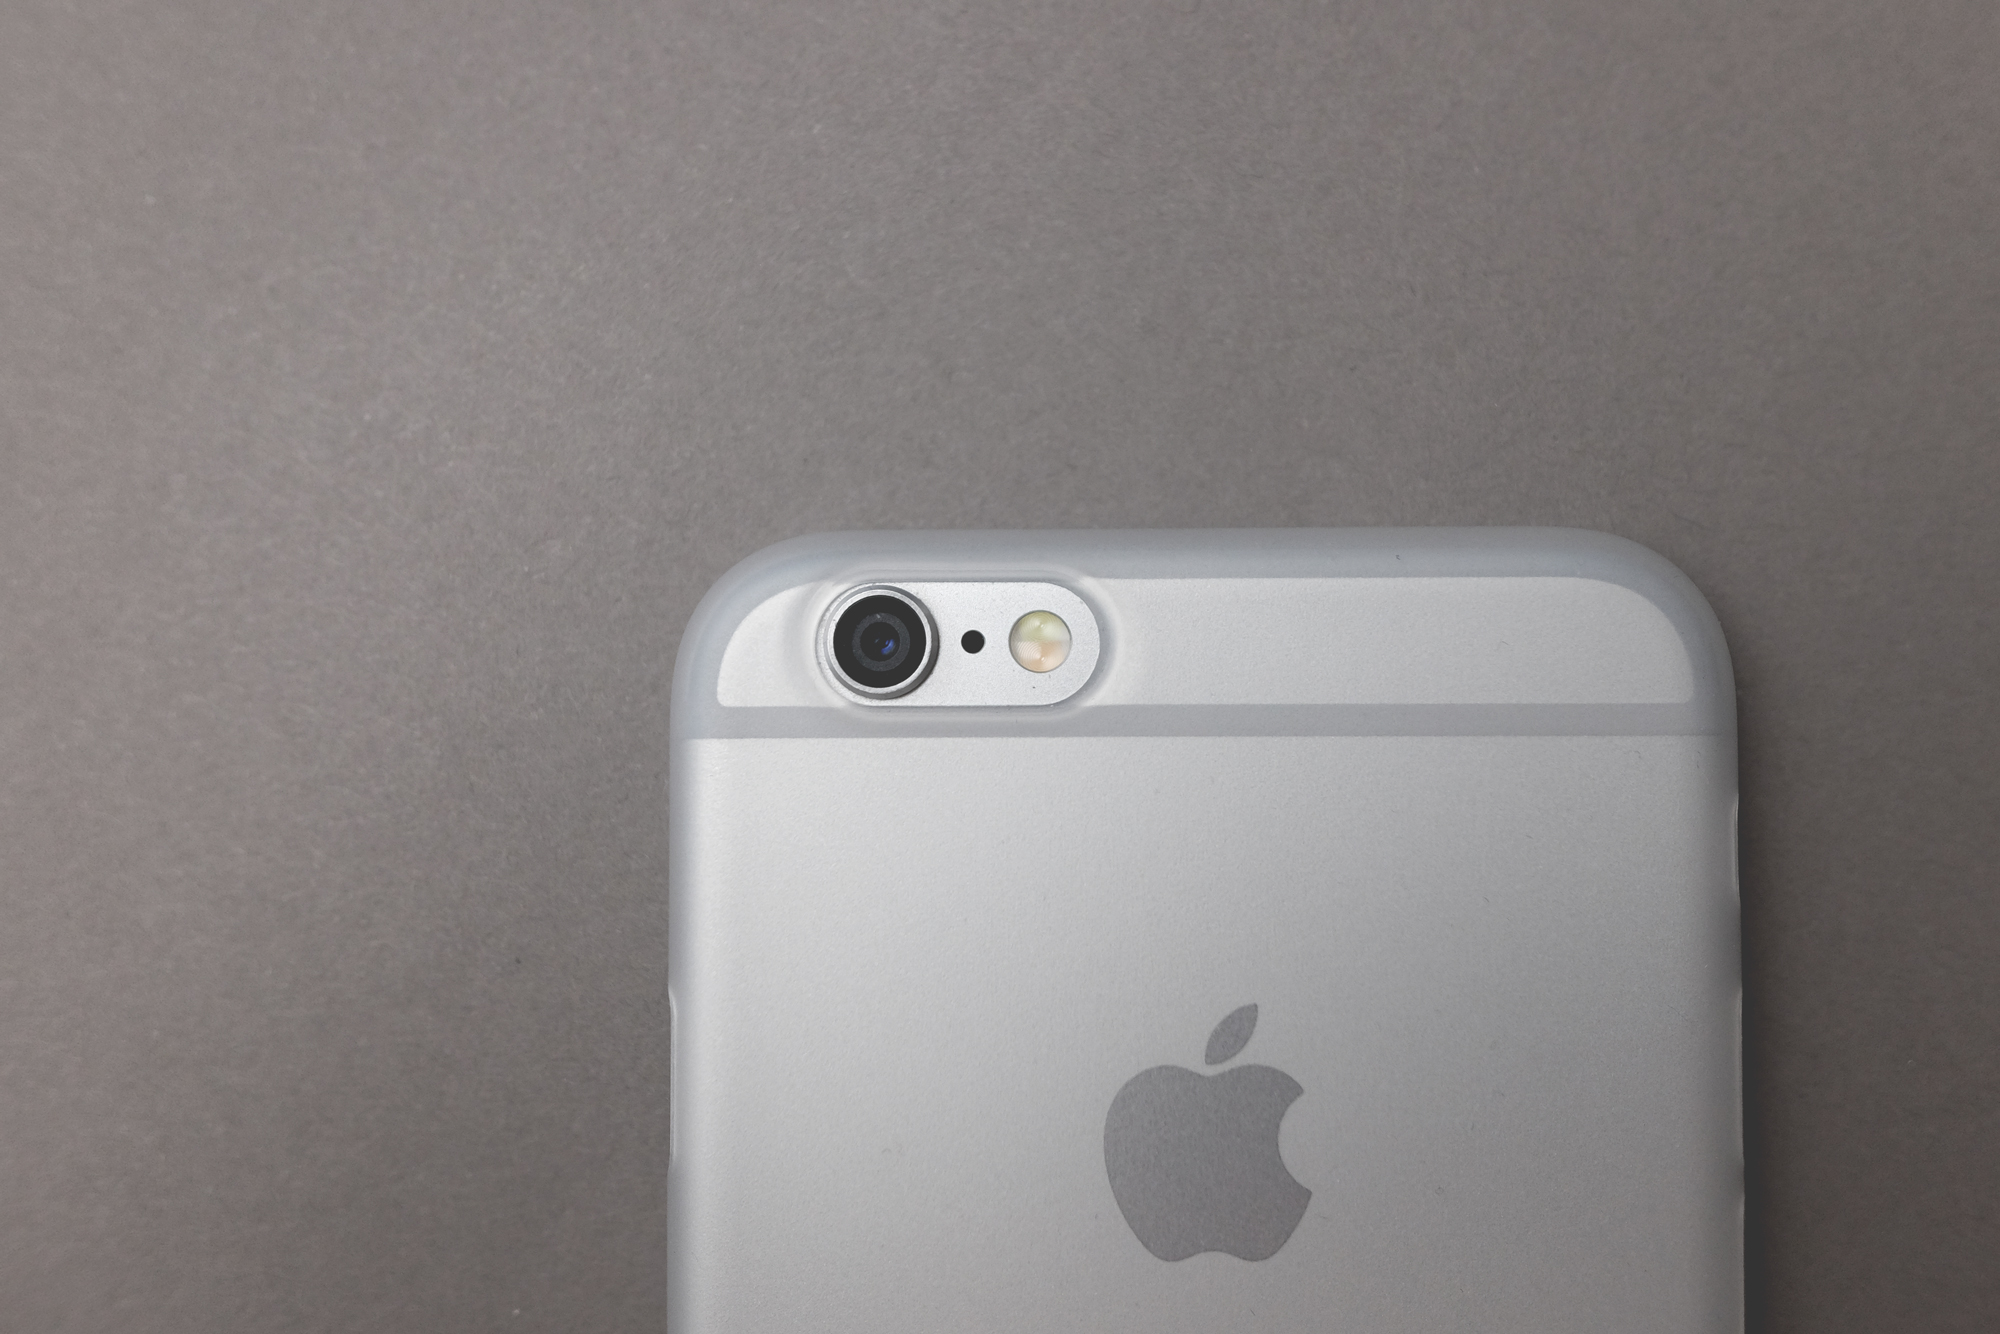 The frosted clear case offers a nice texture and enough clarity that the iPhone's design elements still remain visible.